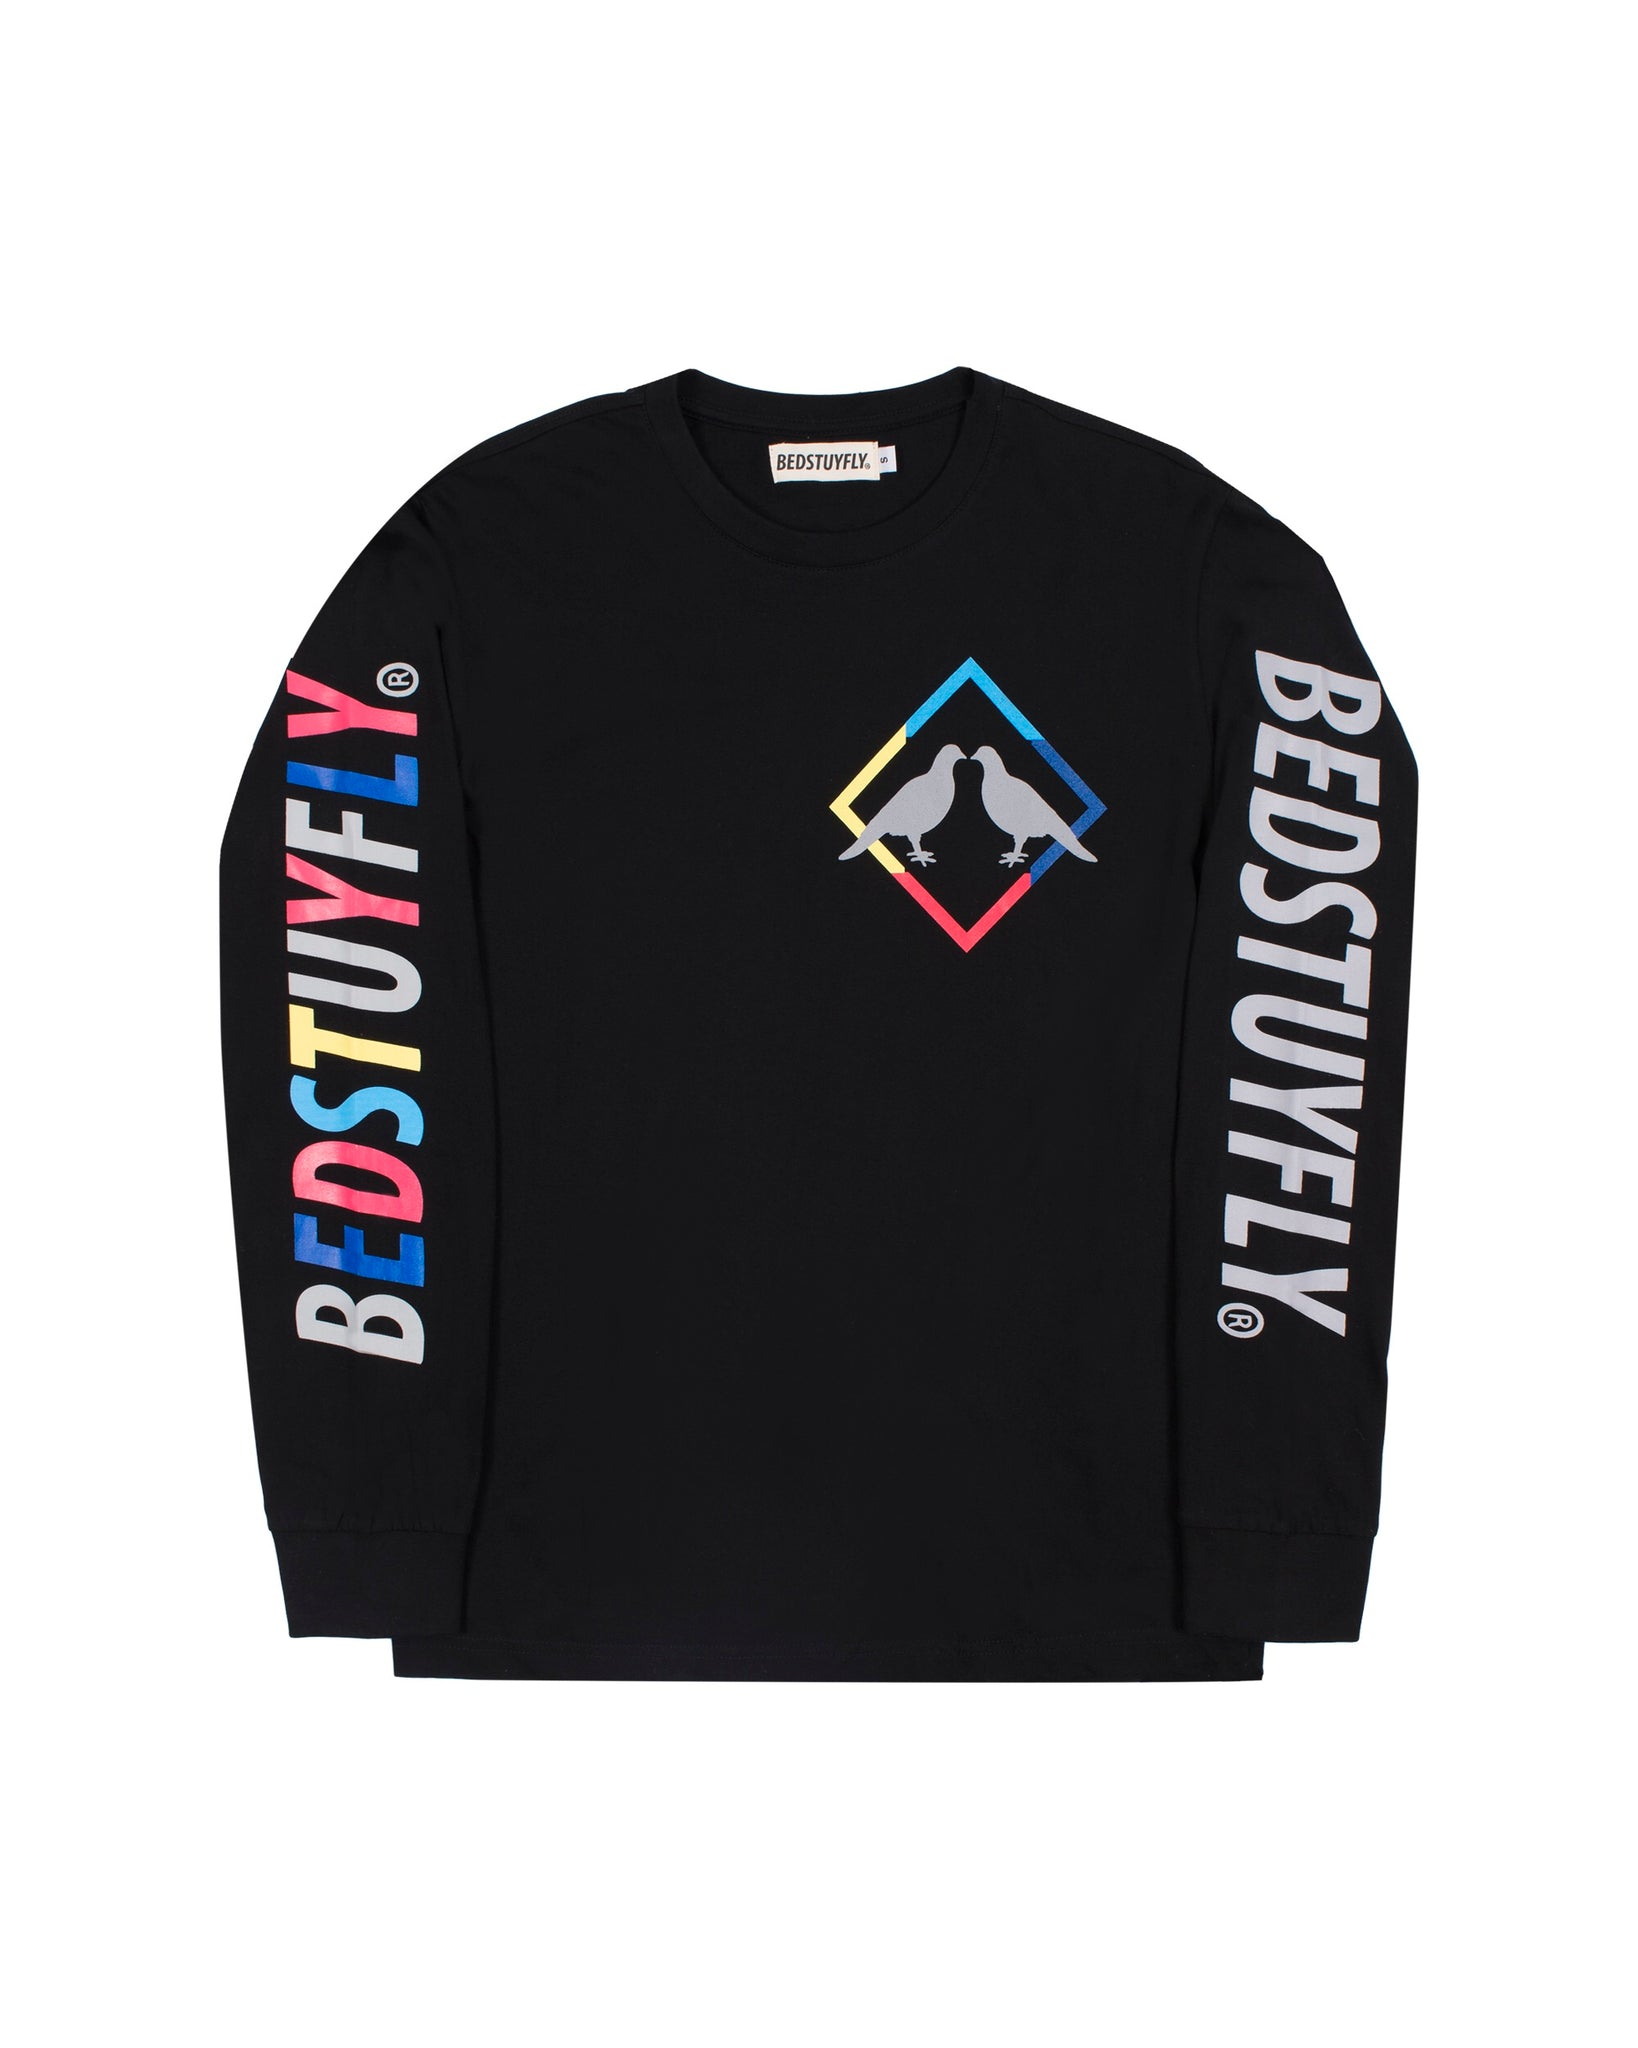 Bedstuyfly 2.0 Long Sleeve (Blk)